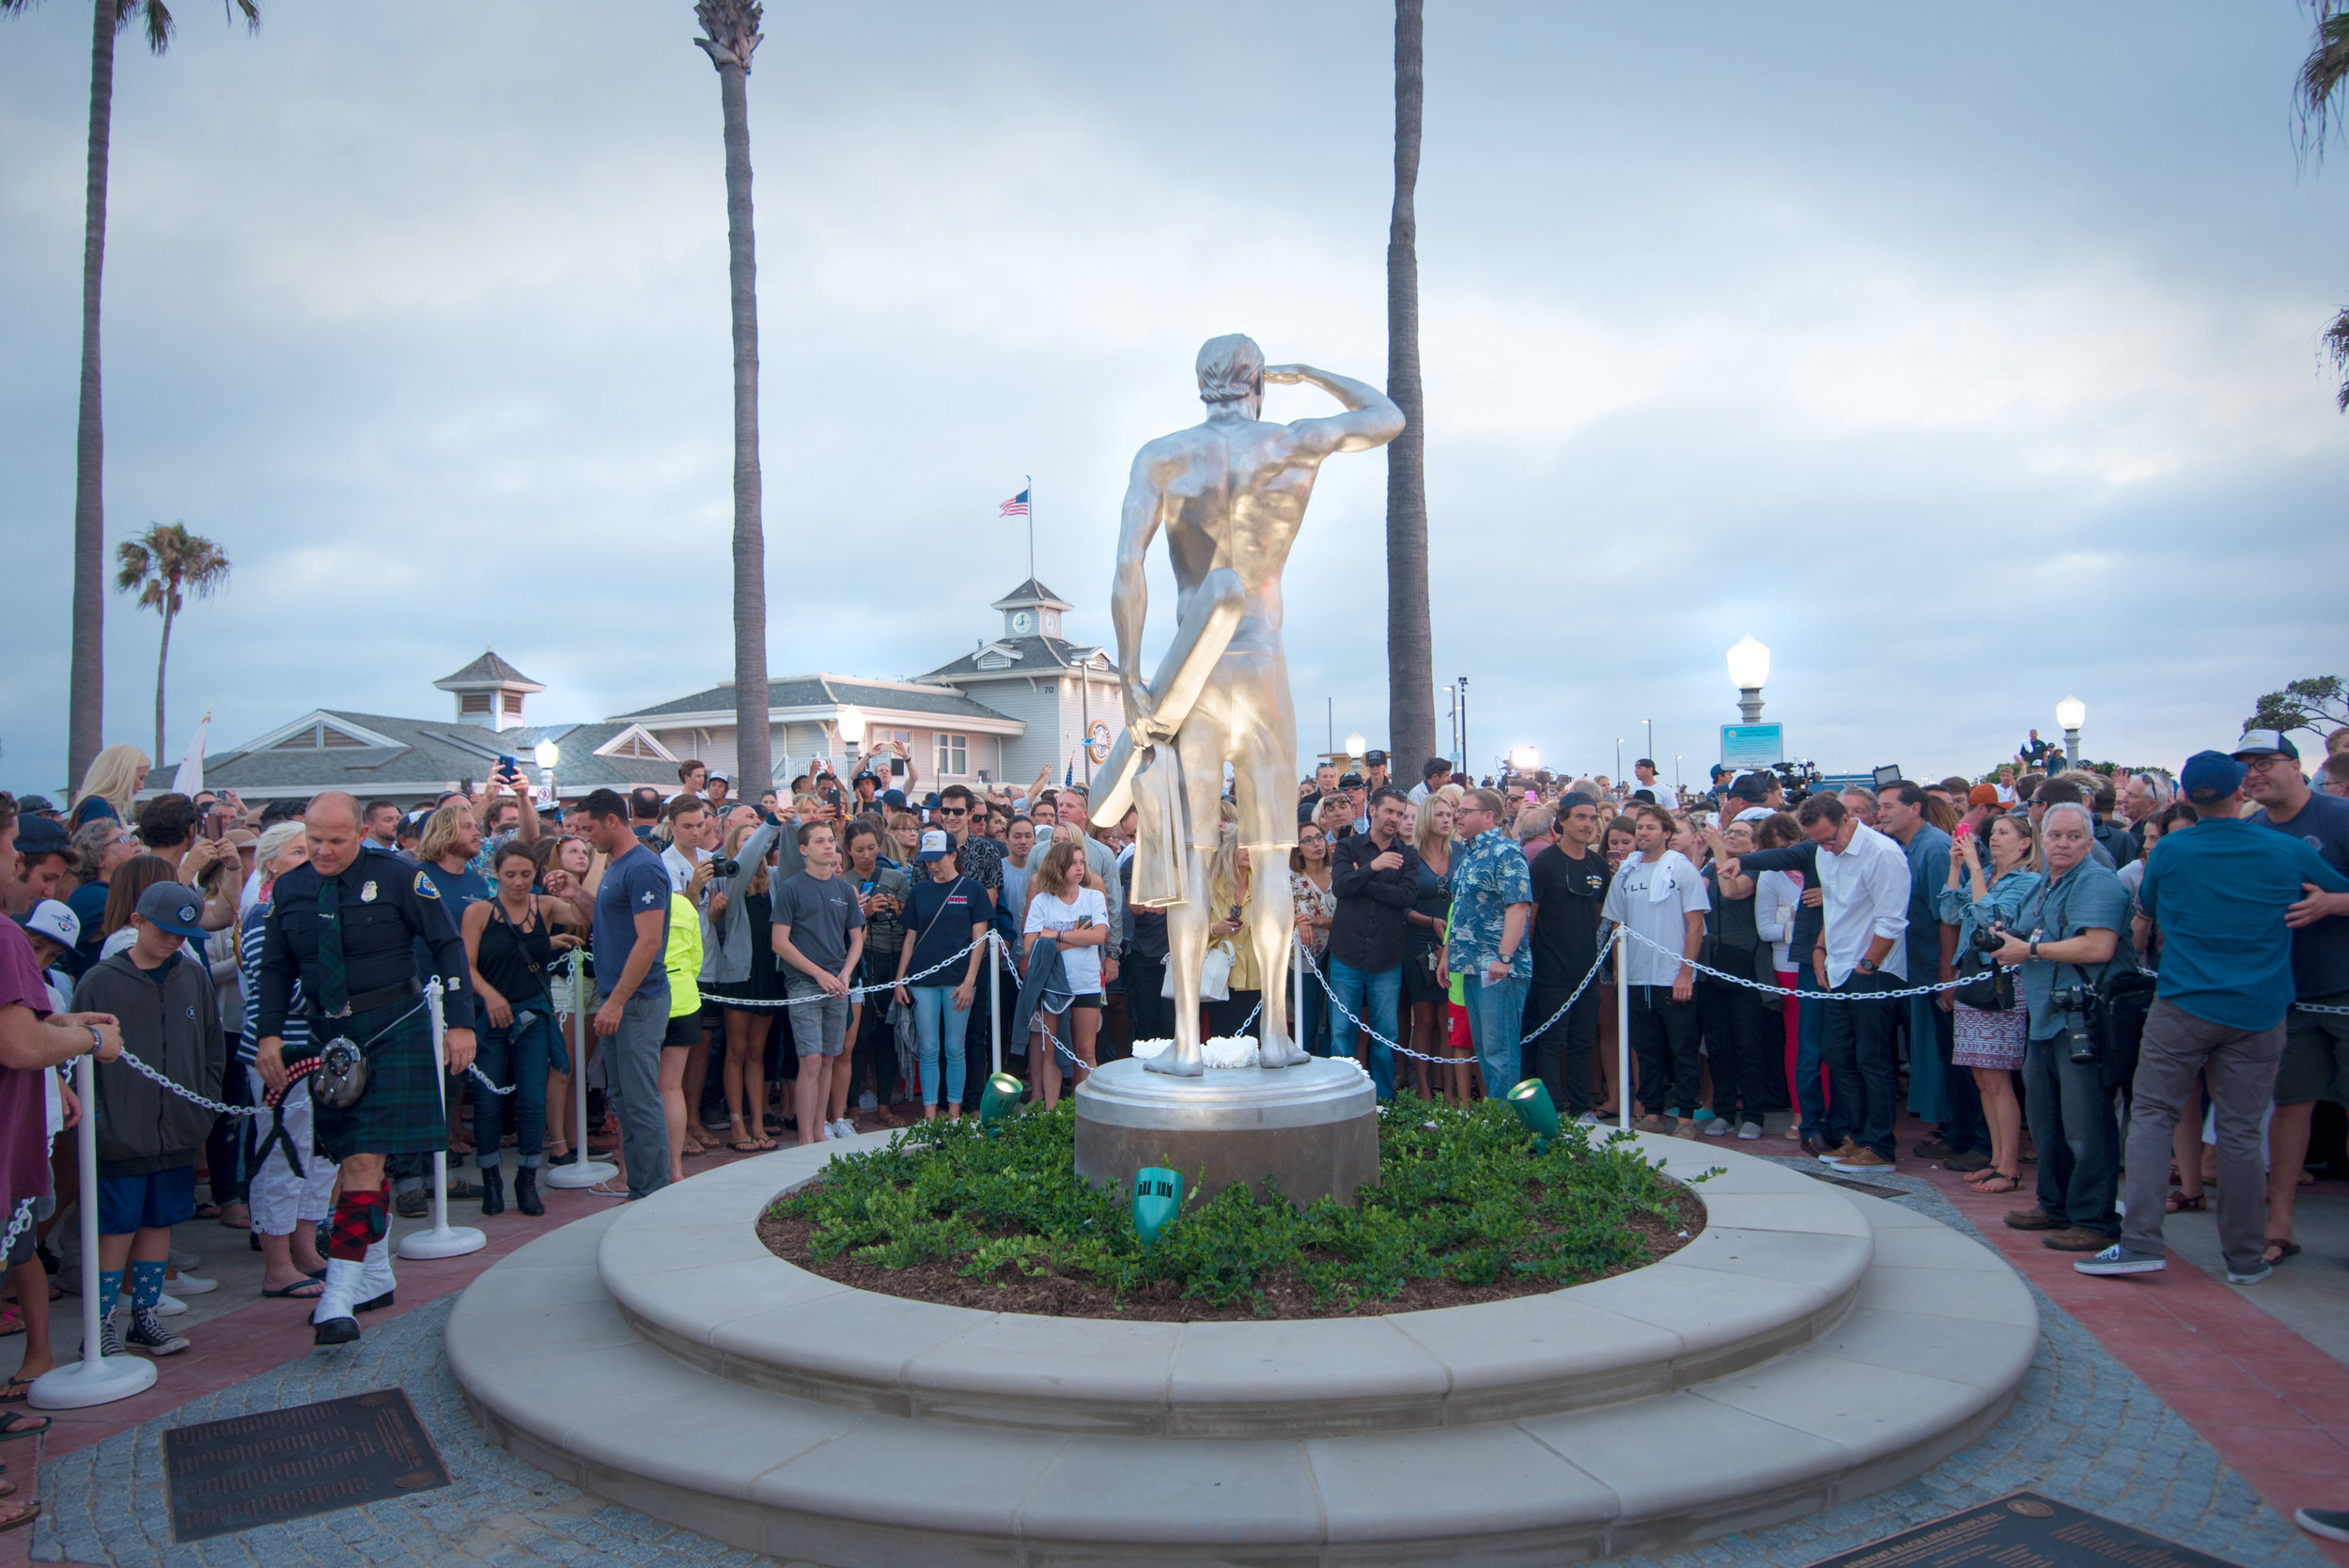 The Ben Carlson Statue Unveiling on July 6, 2016. Photo: Karges Media